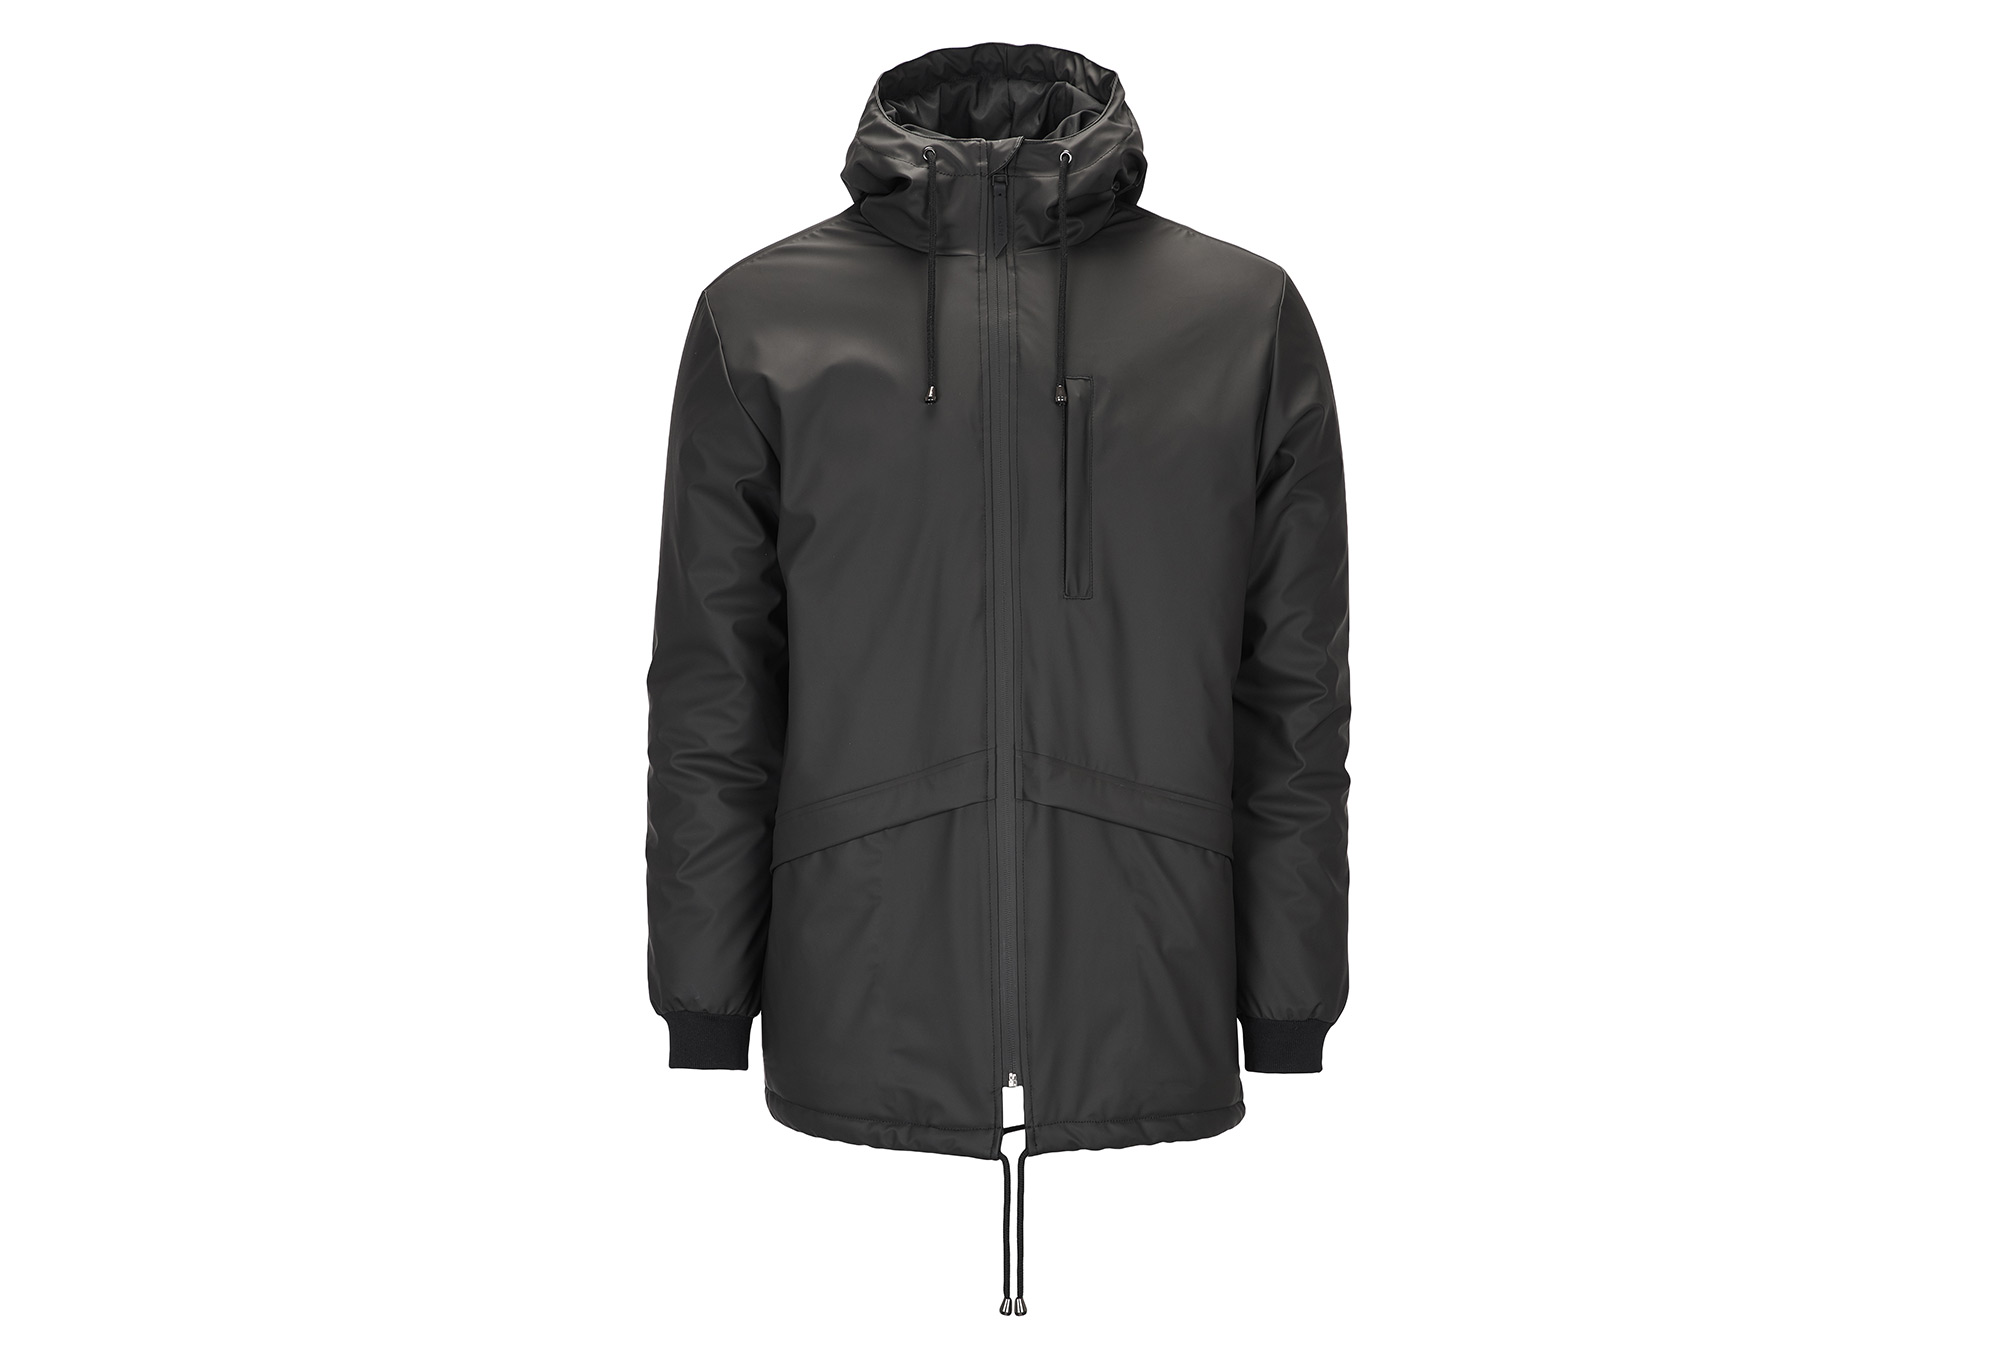 Waterproof Jacket Black Rains N3 Parka 0wqZafxOfF